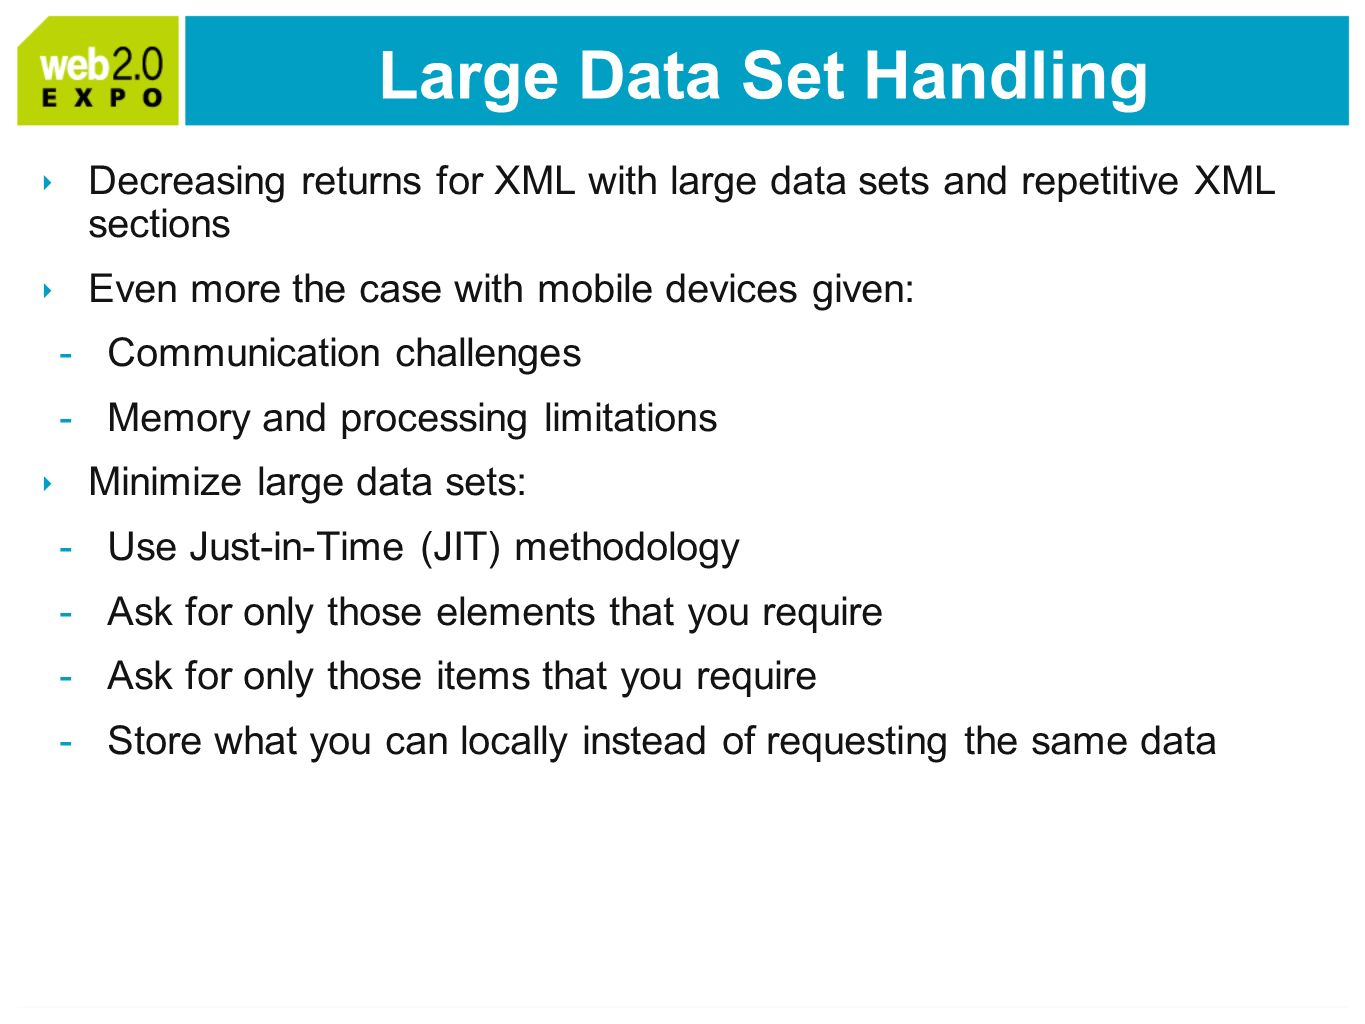 Large Data Set Handling Decreasing returns for XML with large data sets and repetitive XML sections Even more the case with mobile devices given: -Communication challenges -Memory and processing limitations Minimize large data sets: -Use Just-in-Time (JIT) methodology -Ask for only those elements that you require -Ask for only those items that you require -Store what you can locally instead of requesting the same data